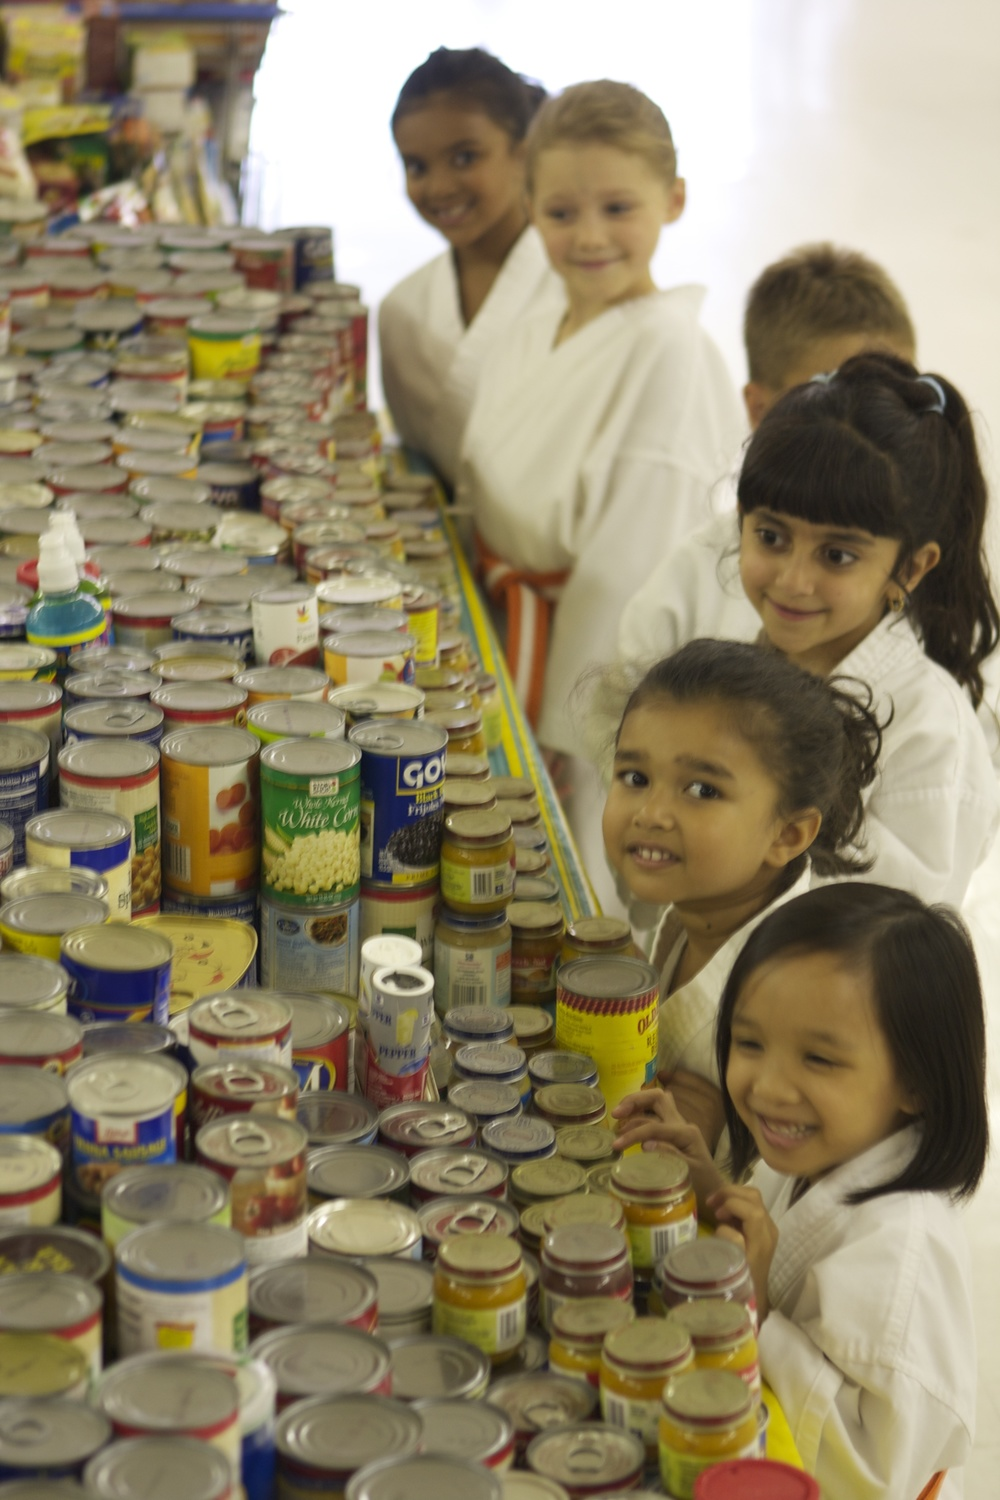 thedojo-food-drive-martial-arts-karate-kids-doing-community-service-in-rutherford-nj_14484421130_o.jpg